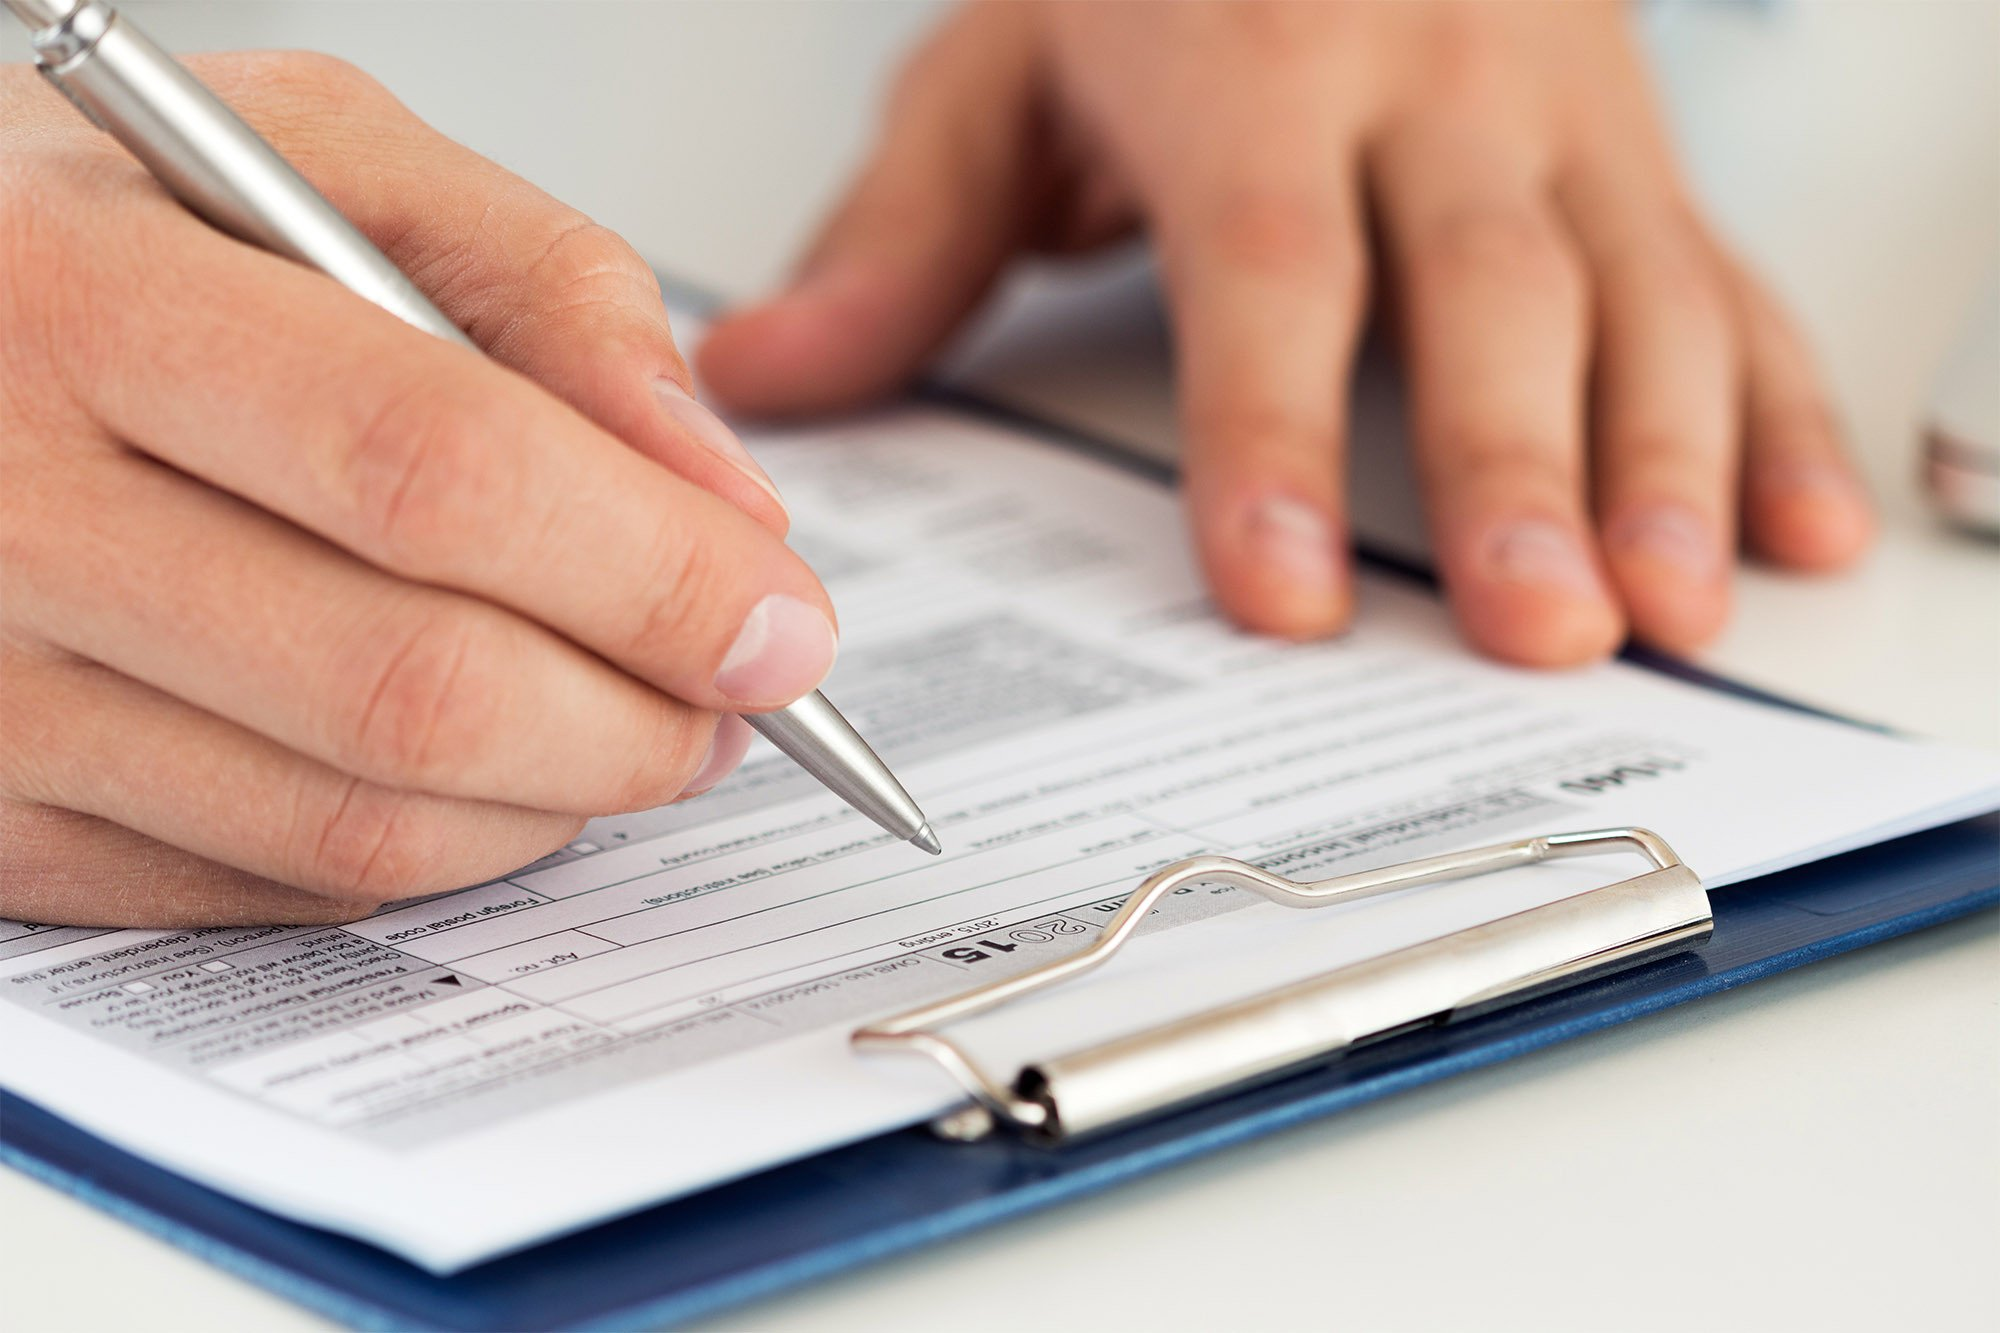 Gender bias even shows up on your tax forms